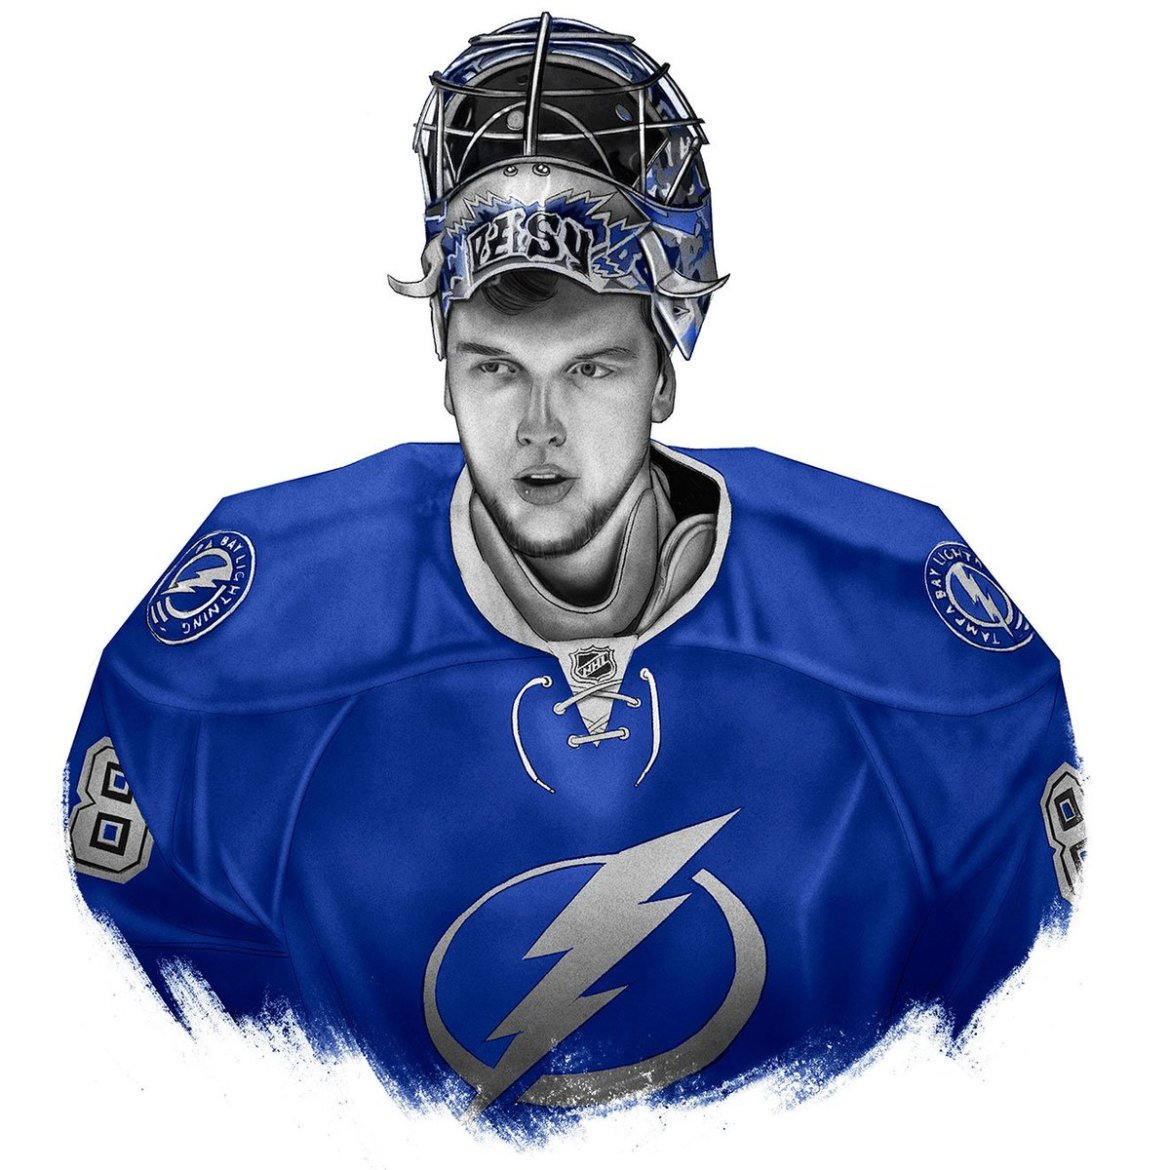 Enjoy our exclusive illustration of @TBLightning goalie Andrei Vasilevskiy.  #GoBolts